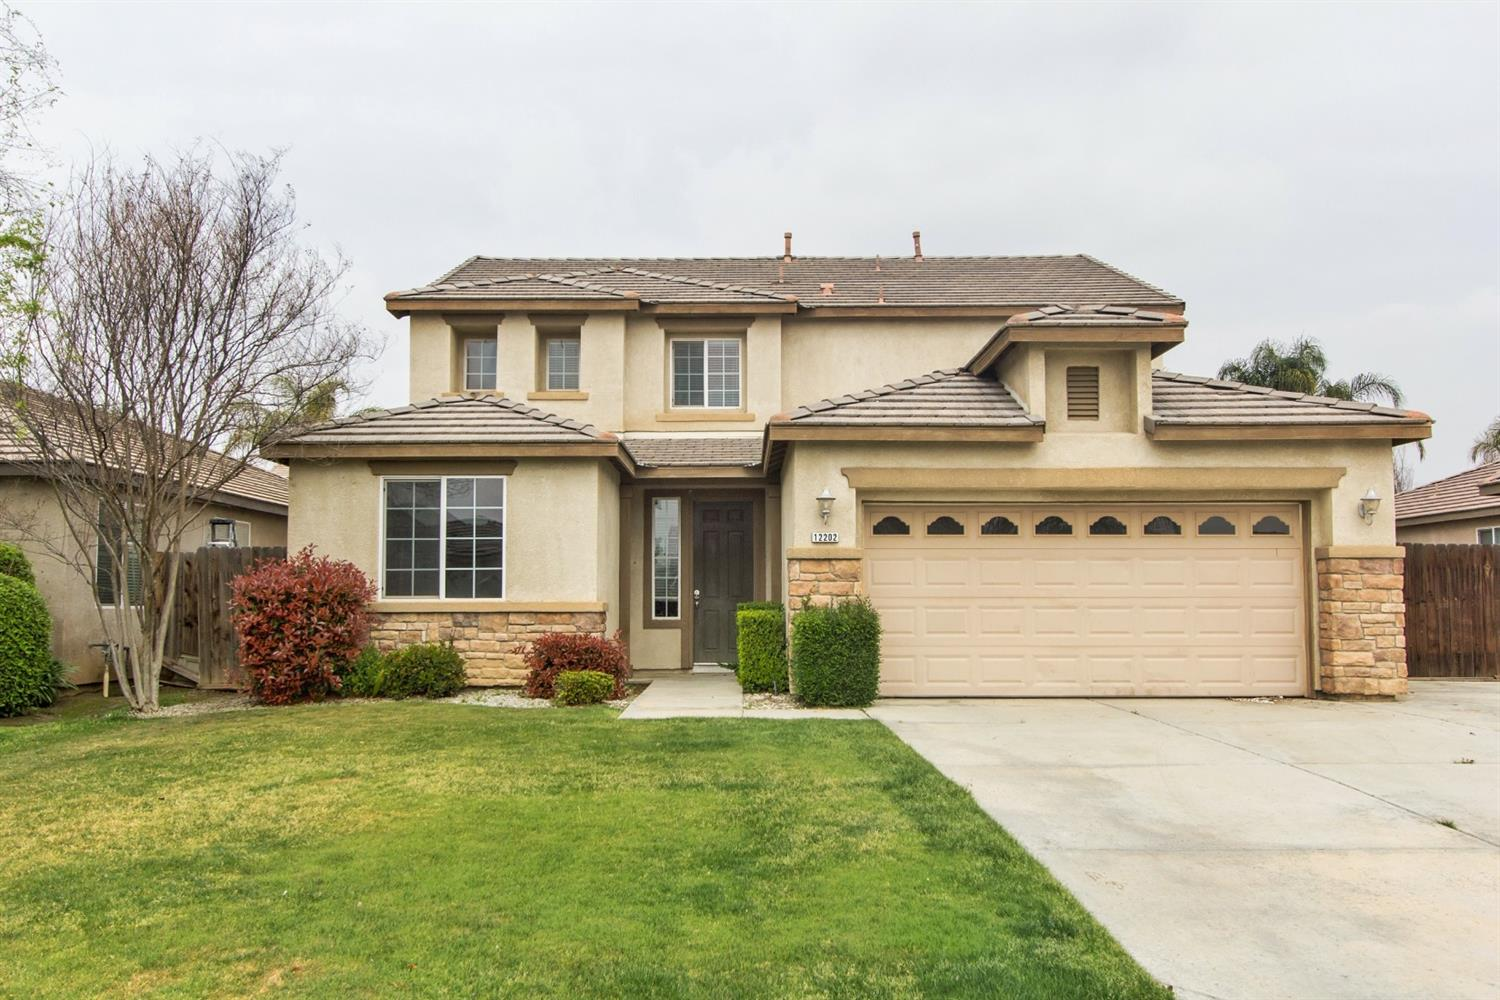 Photo of 12202 Childress Street, Bakersfield, CA 93312